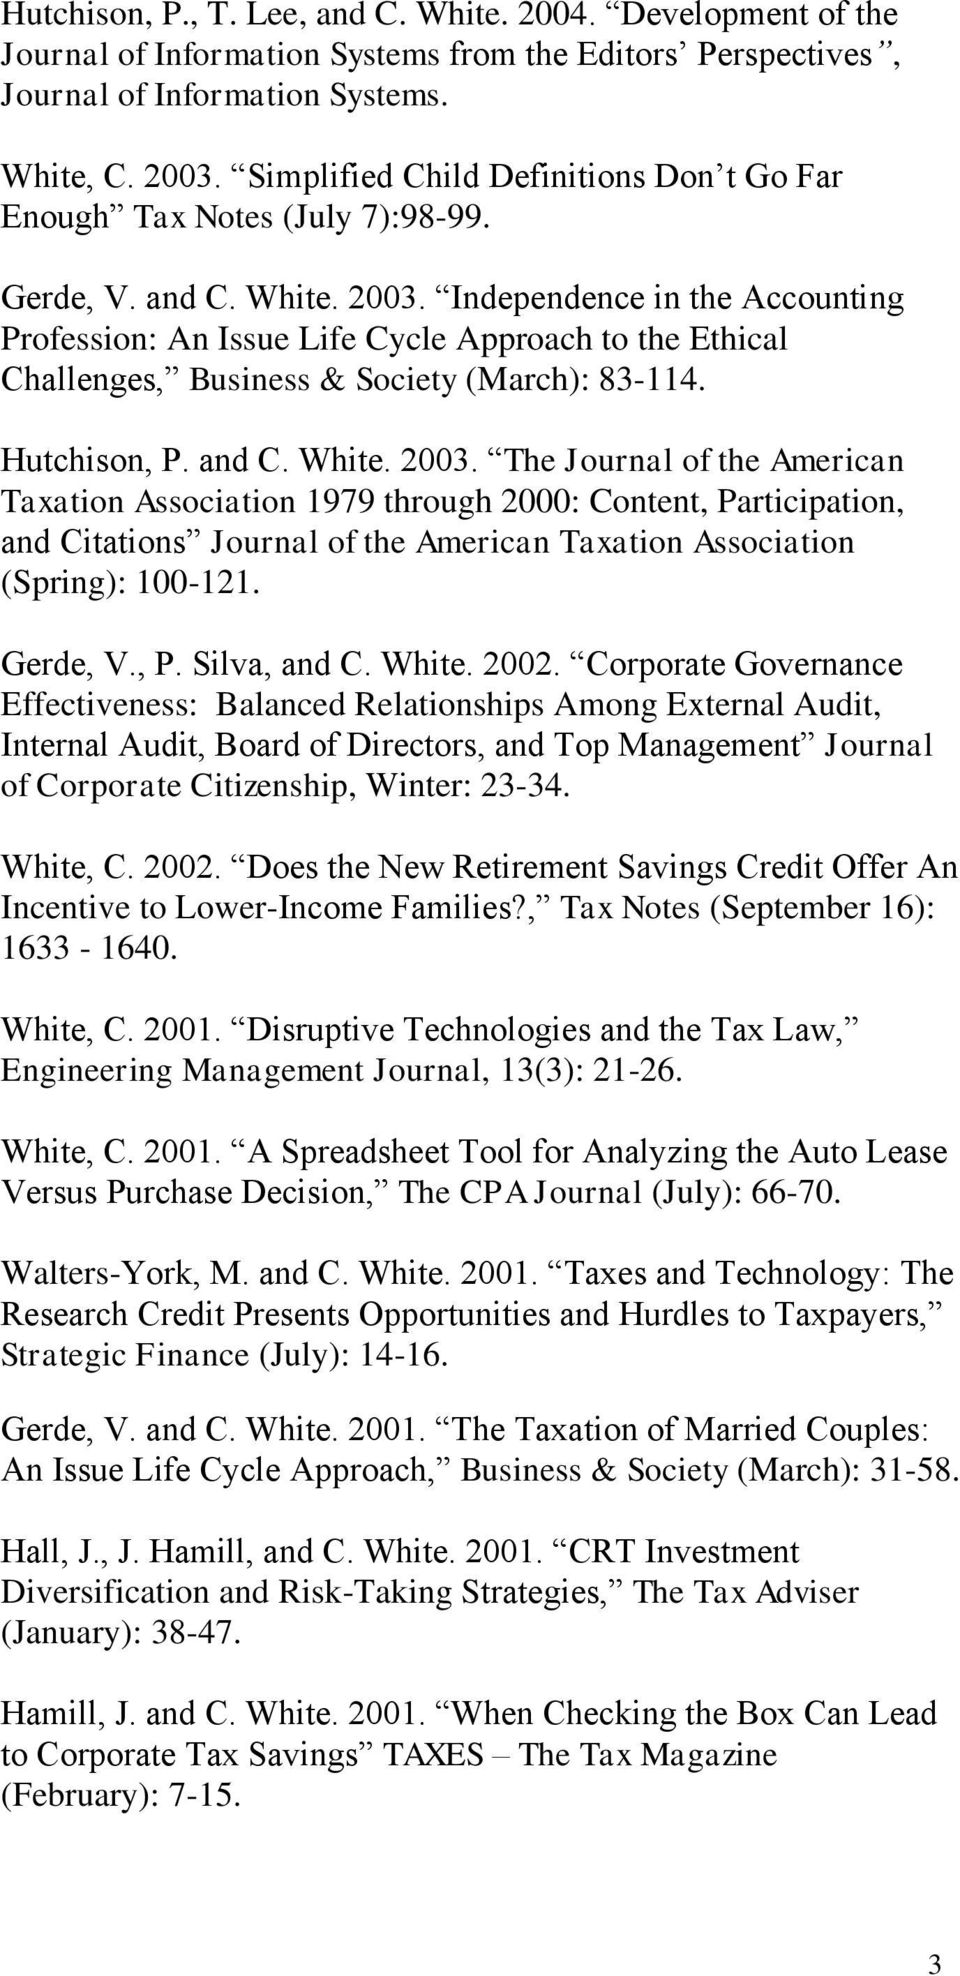 Independence in the Accounting Profession: An Issue Life Cycle Approach to the Ethical Challenges, Business & Society (March): 83-114. Hutchison, P. and C. White. 2003.